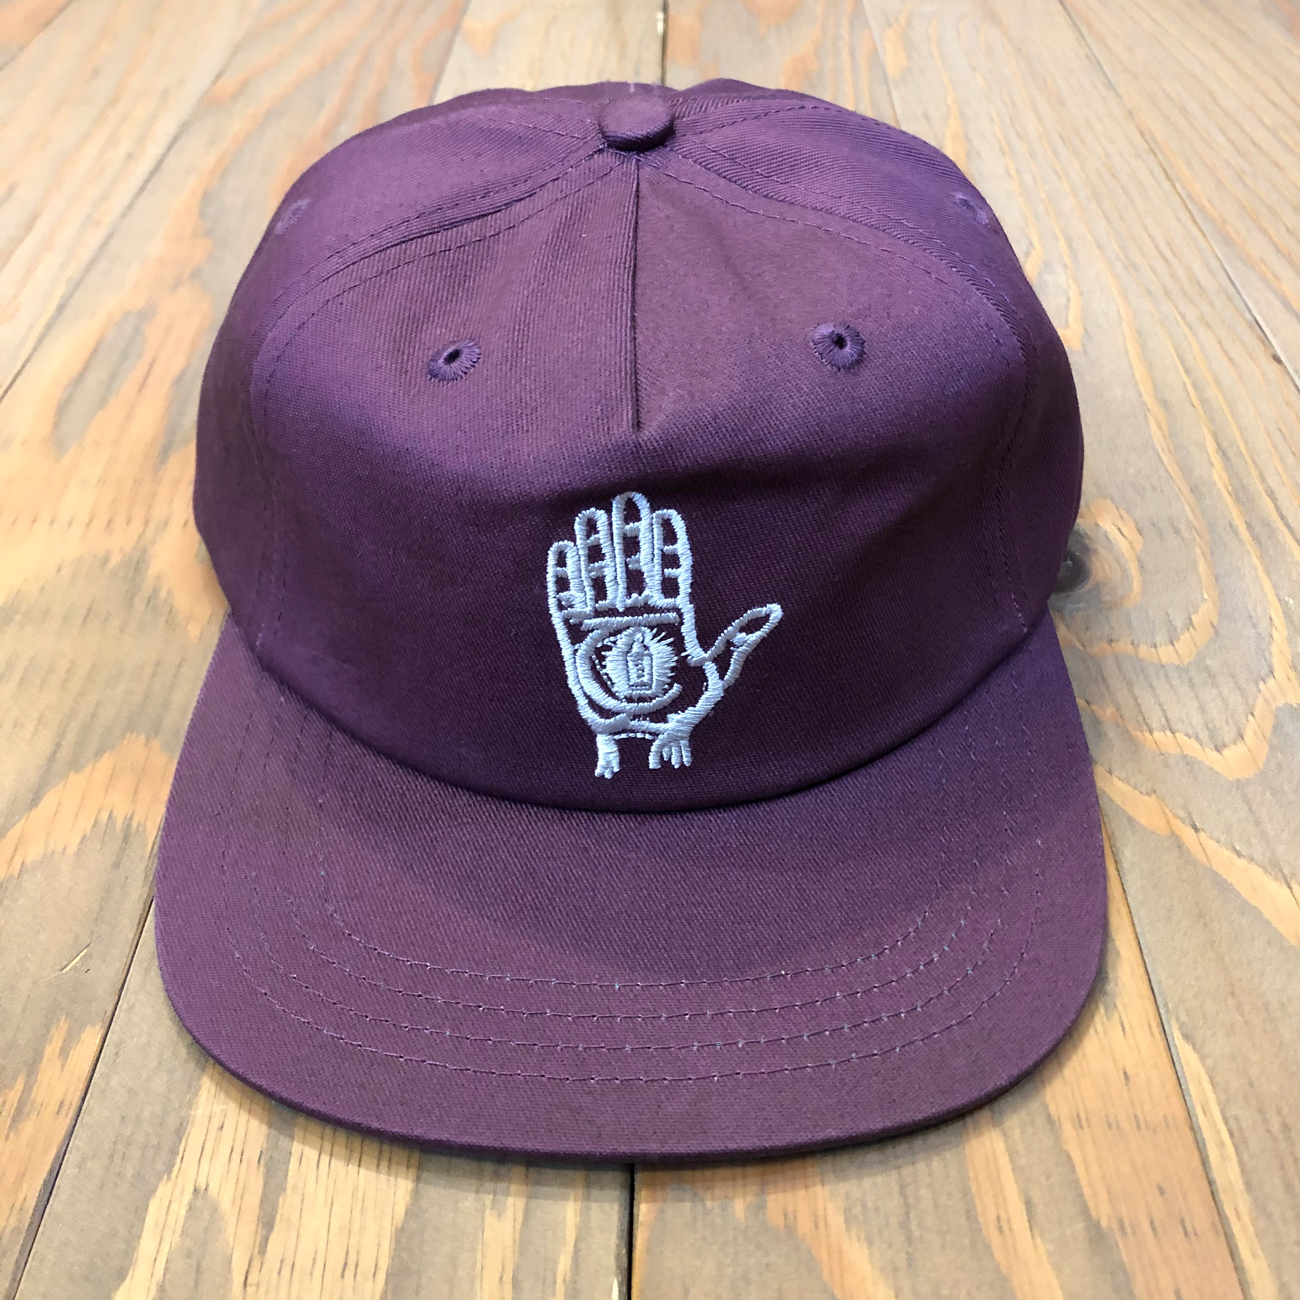 THEORIES HAND OF THEORIES STRAPBACK CAP PLUM